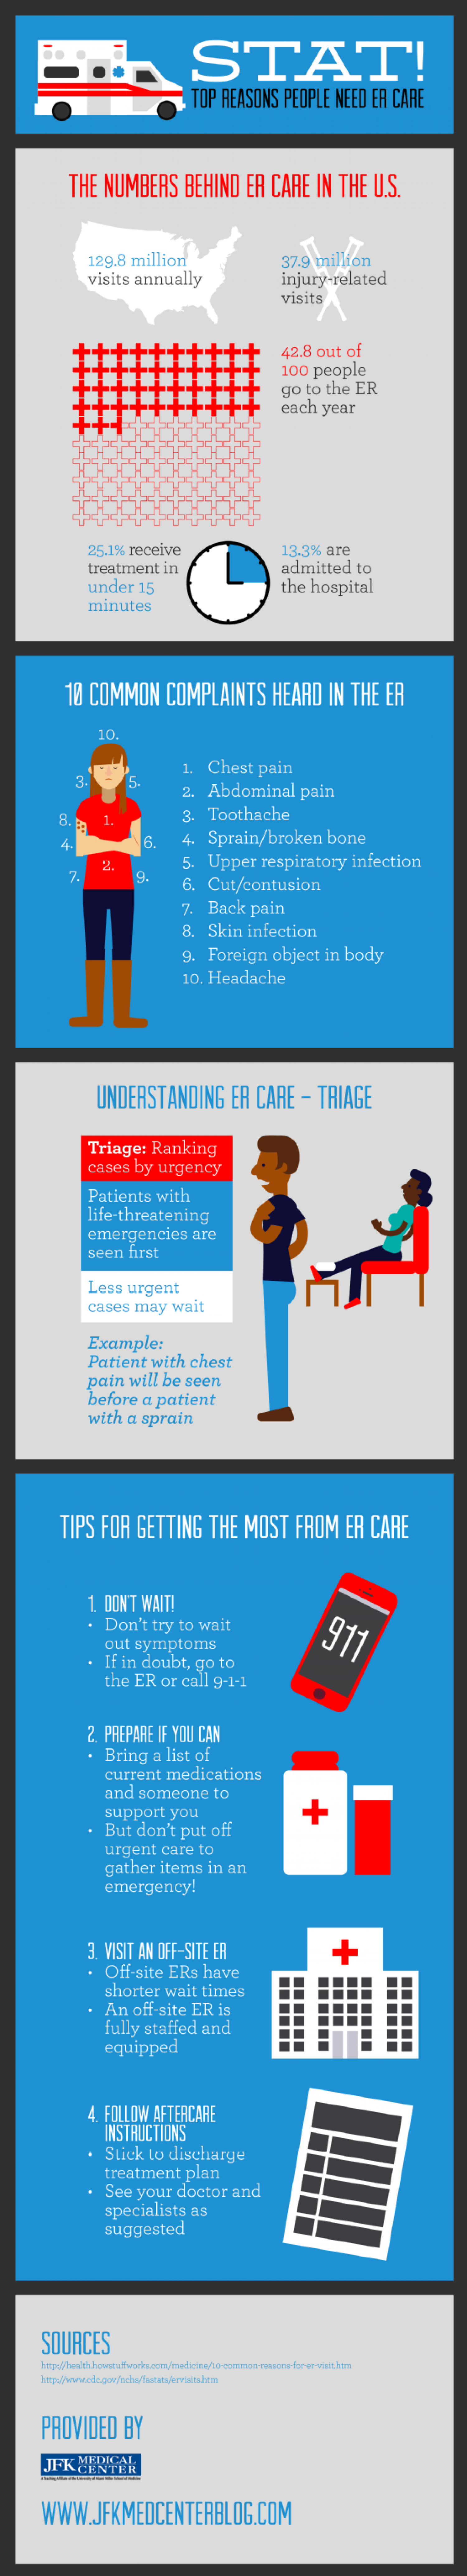 Stat! Top Reasons People Need ER Care Infographic